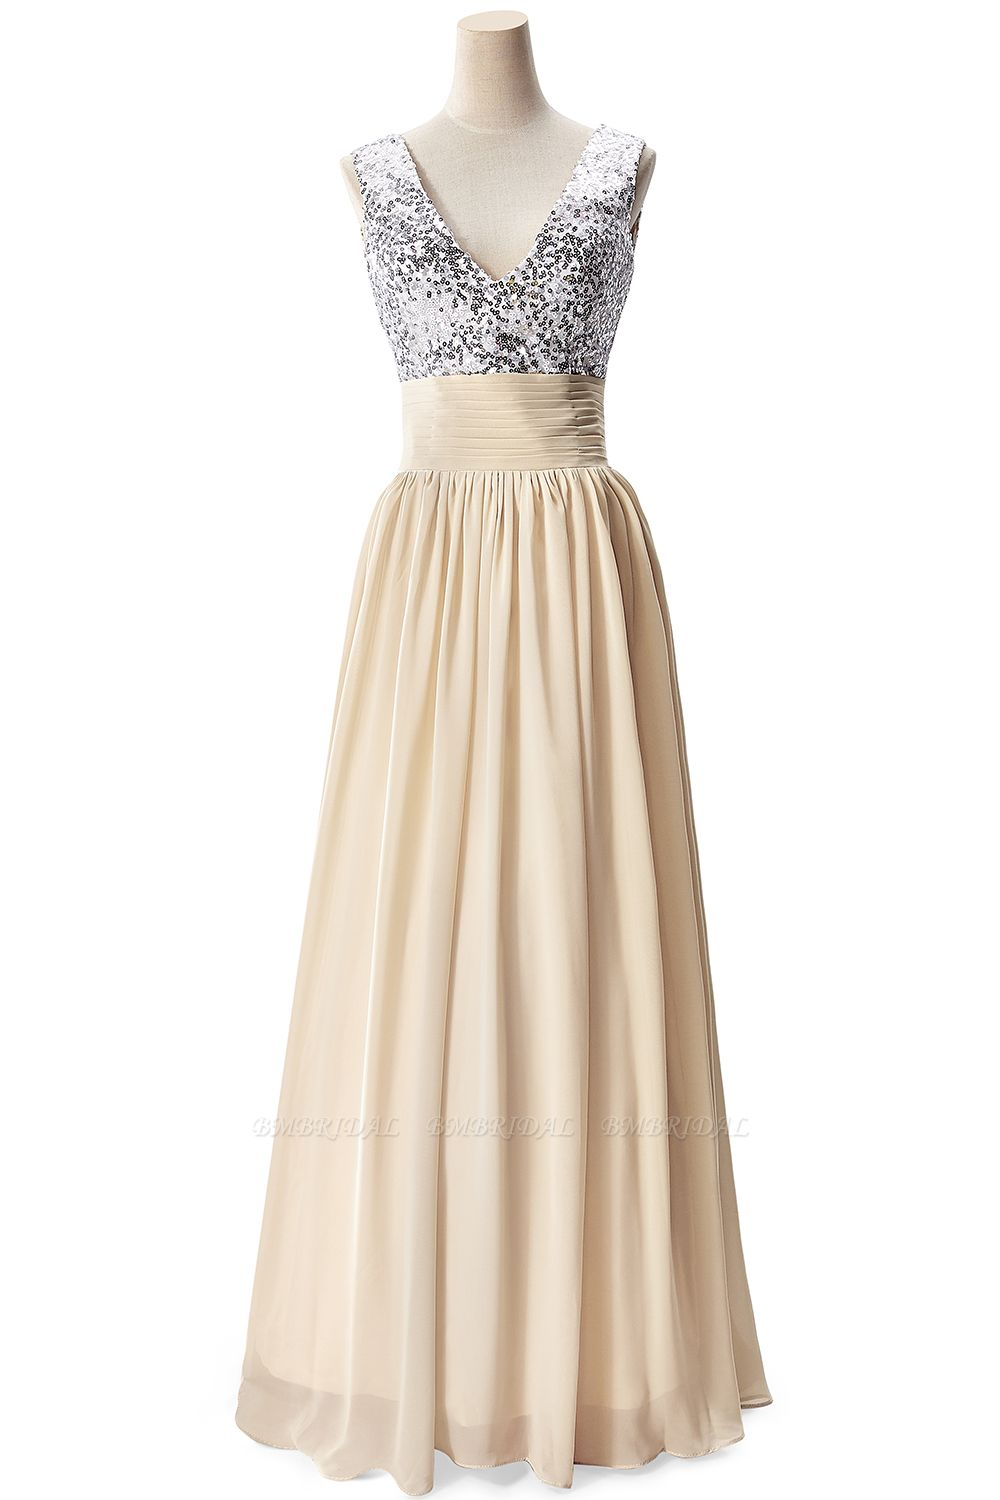 BMbridal A-line V-neck Chiffon Party Dress With Sequined